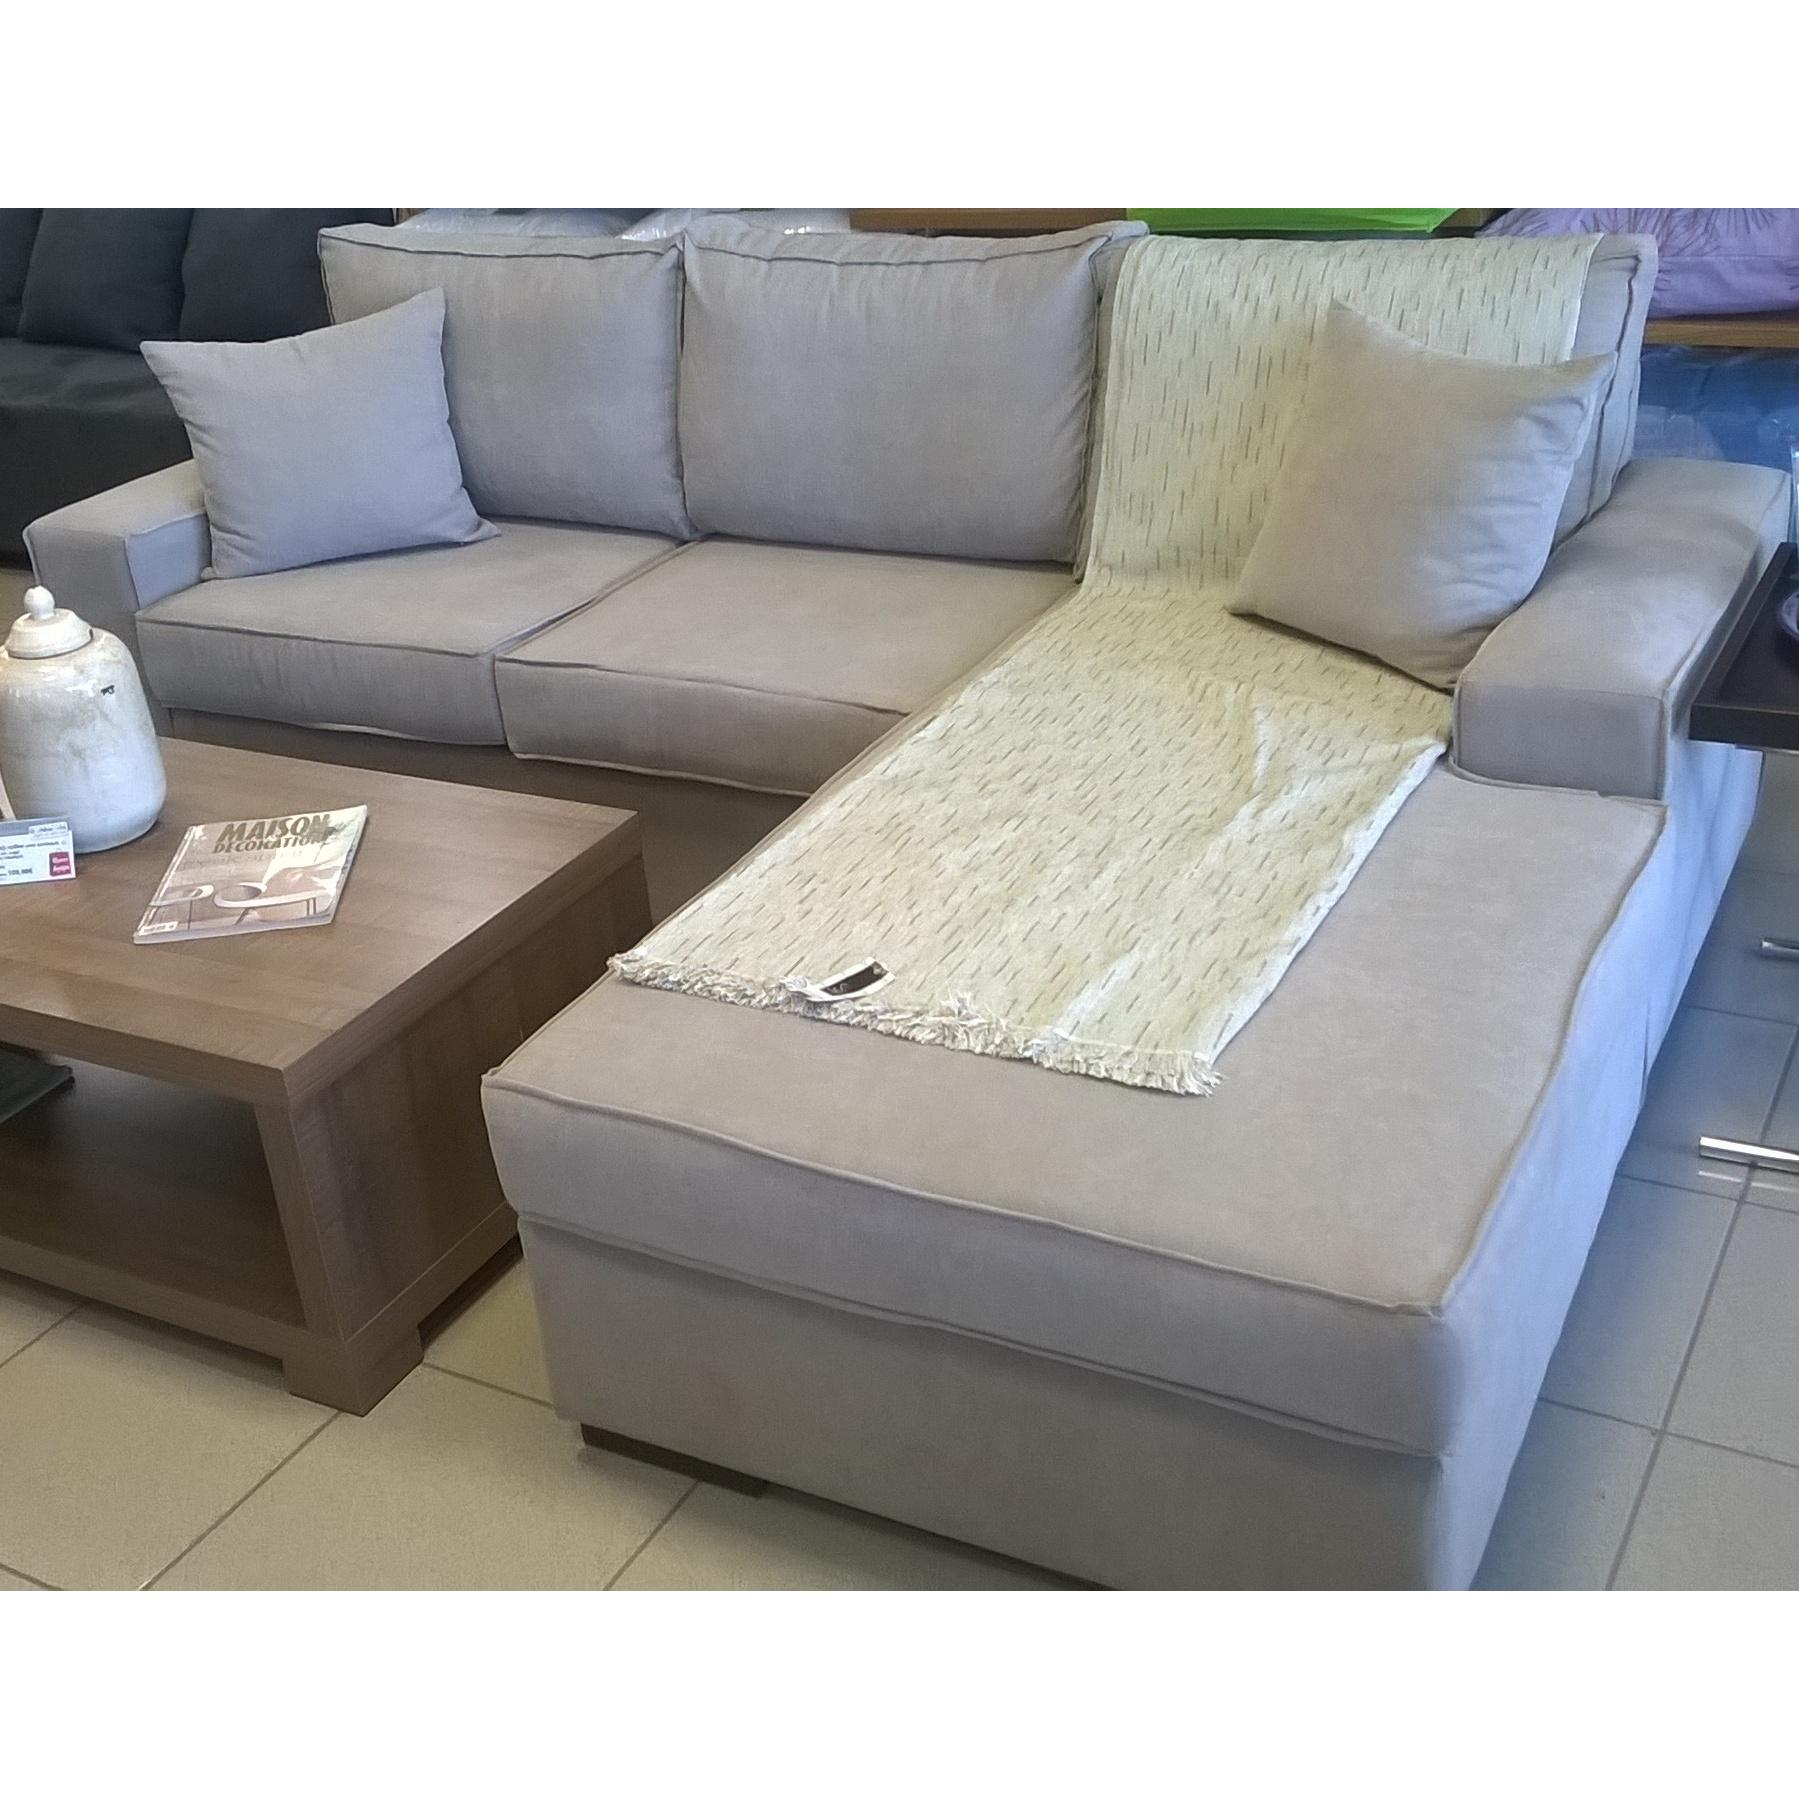 Reversible corner sofa sierra 240x170 cm for Sofa 170 cm breit